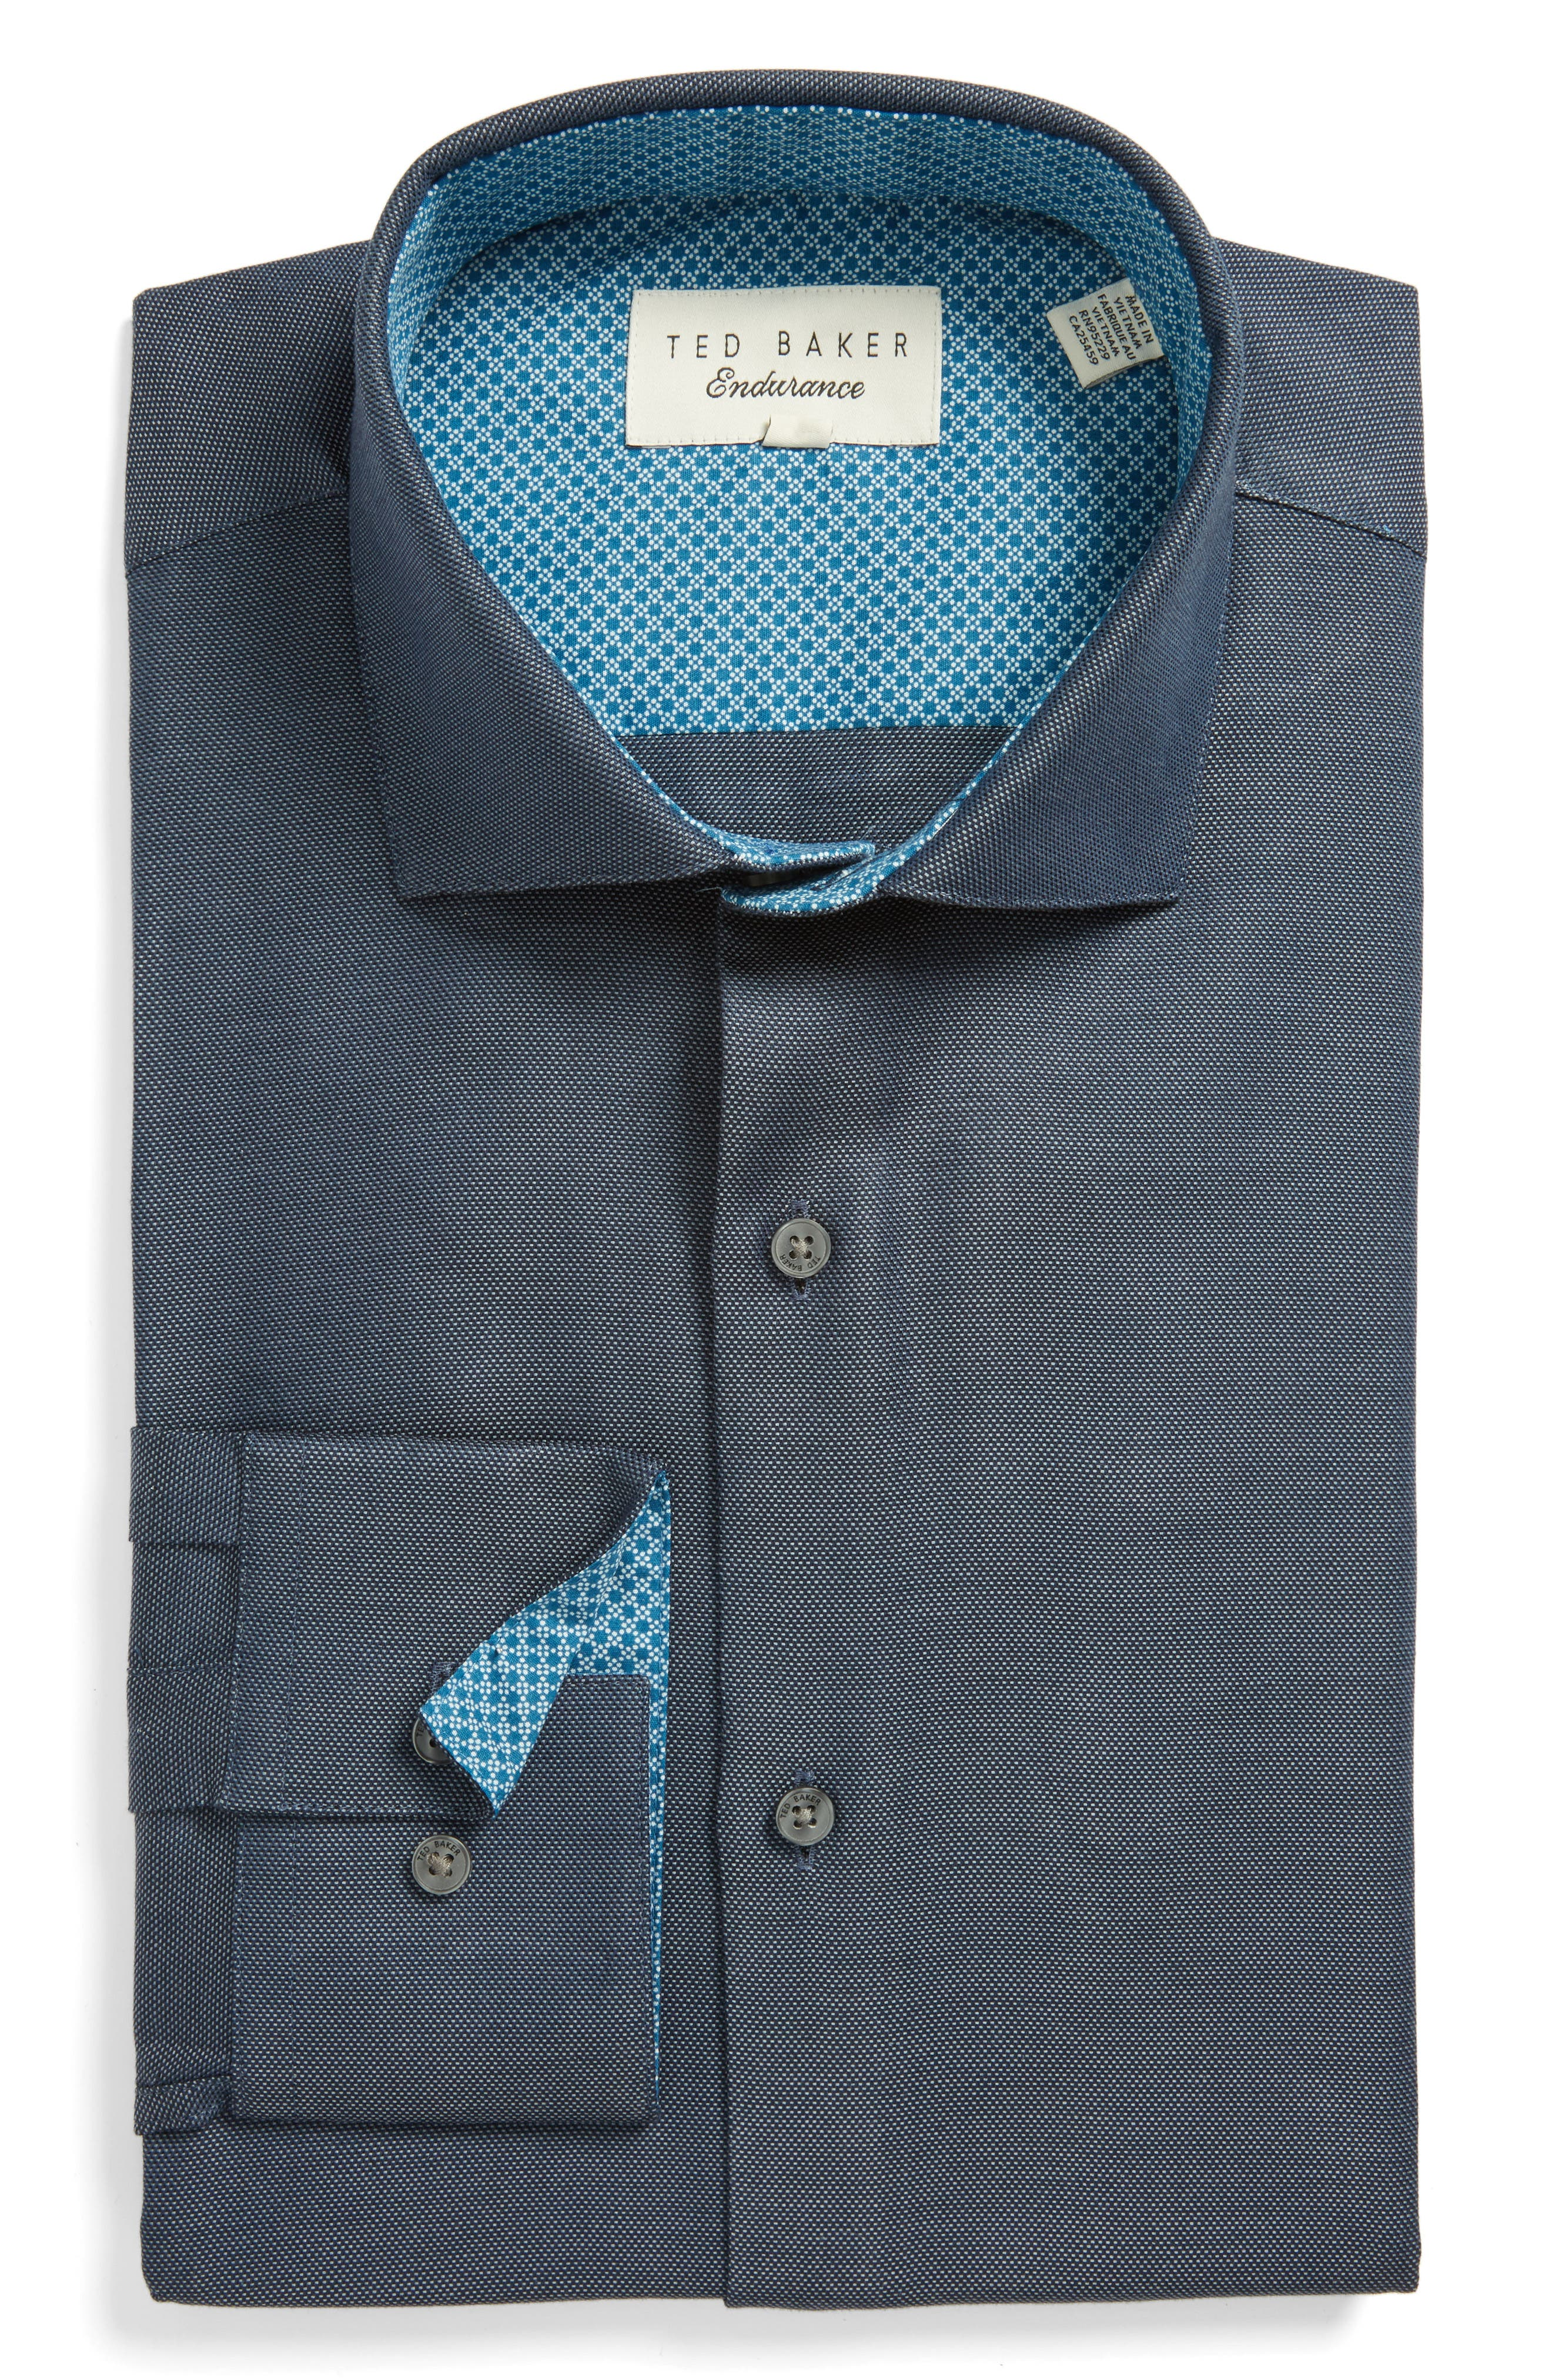 Ted Baker London Endurance Trim Fit Dress Shirt